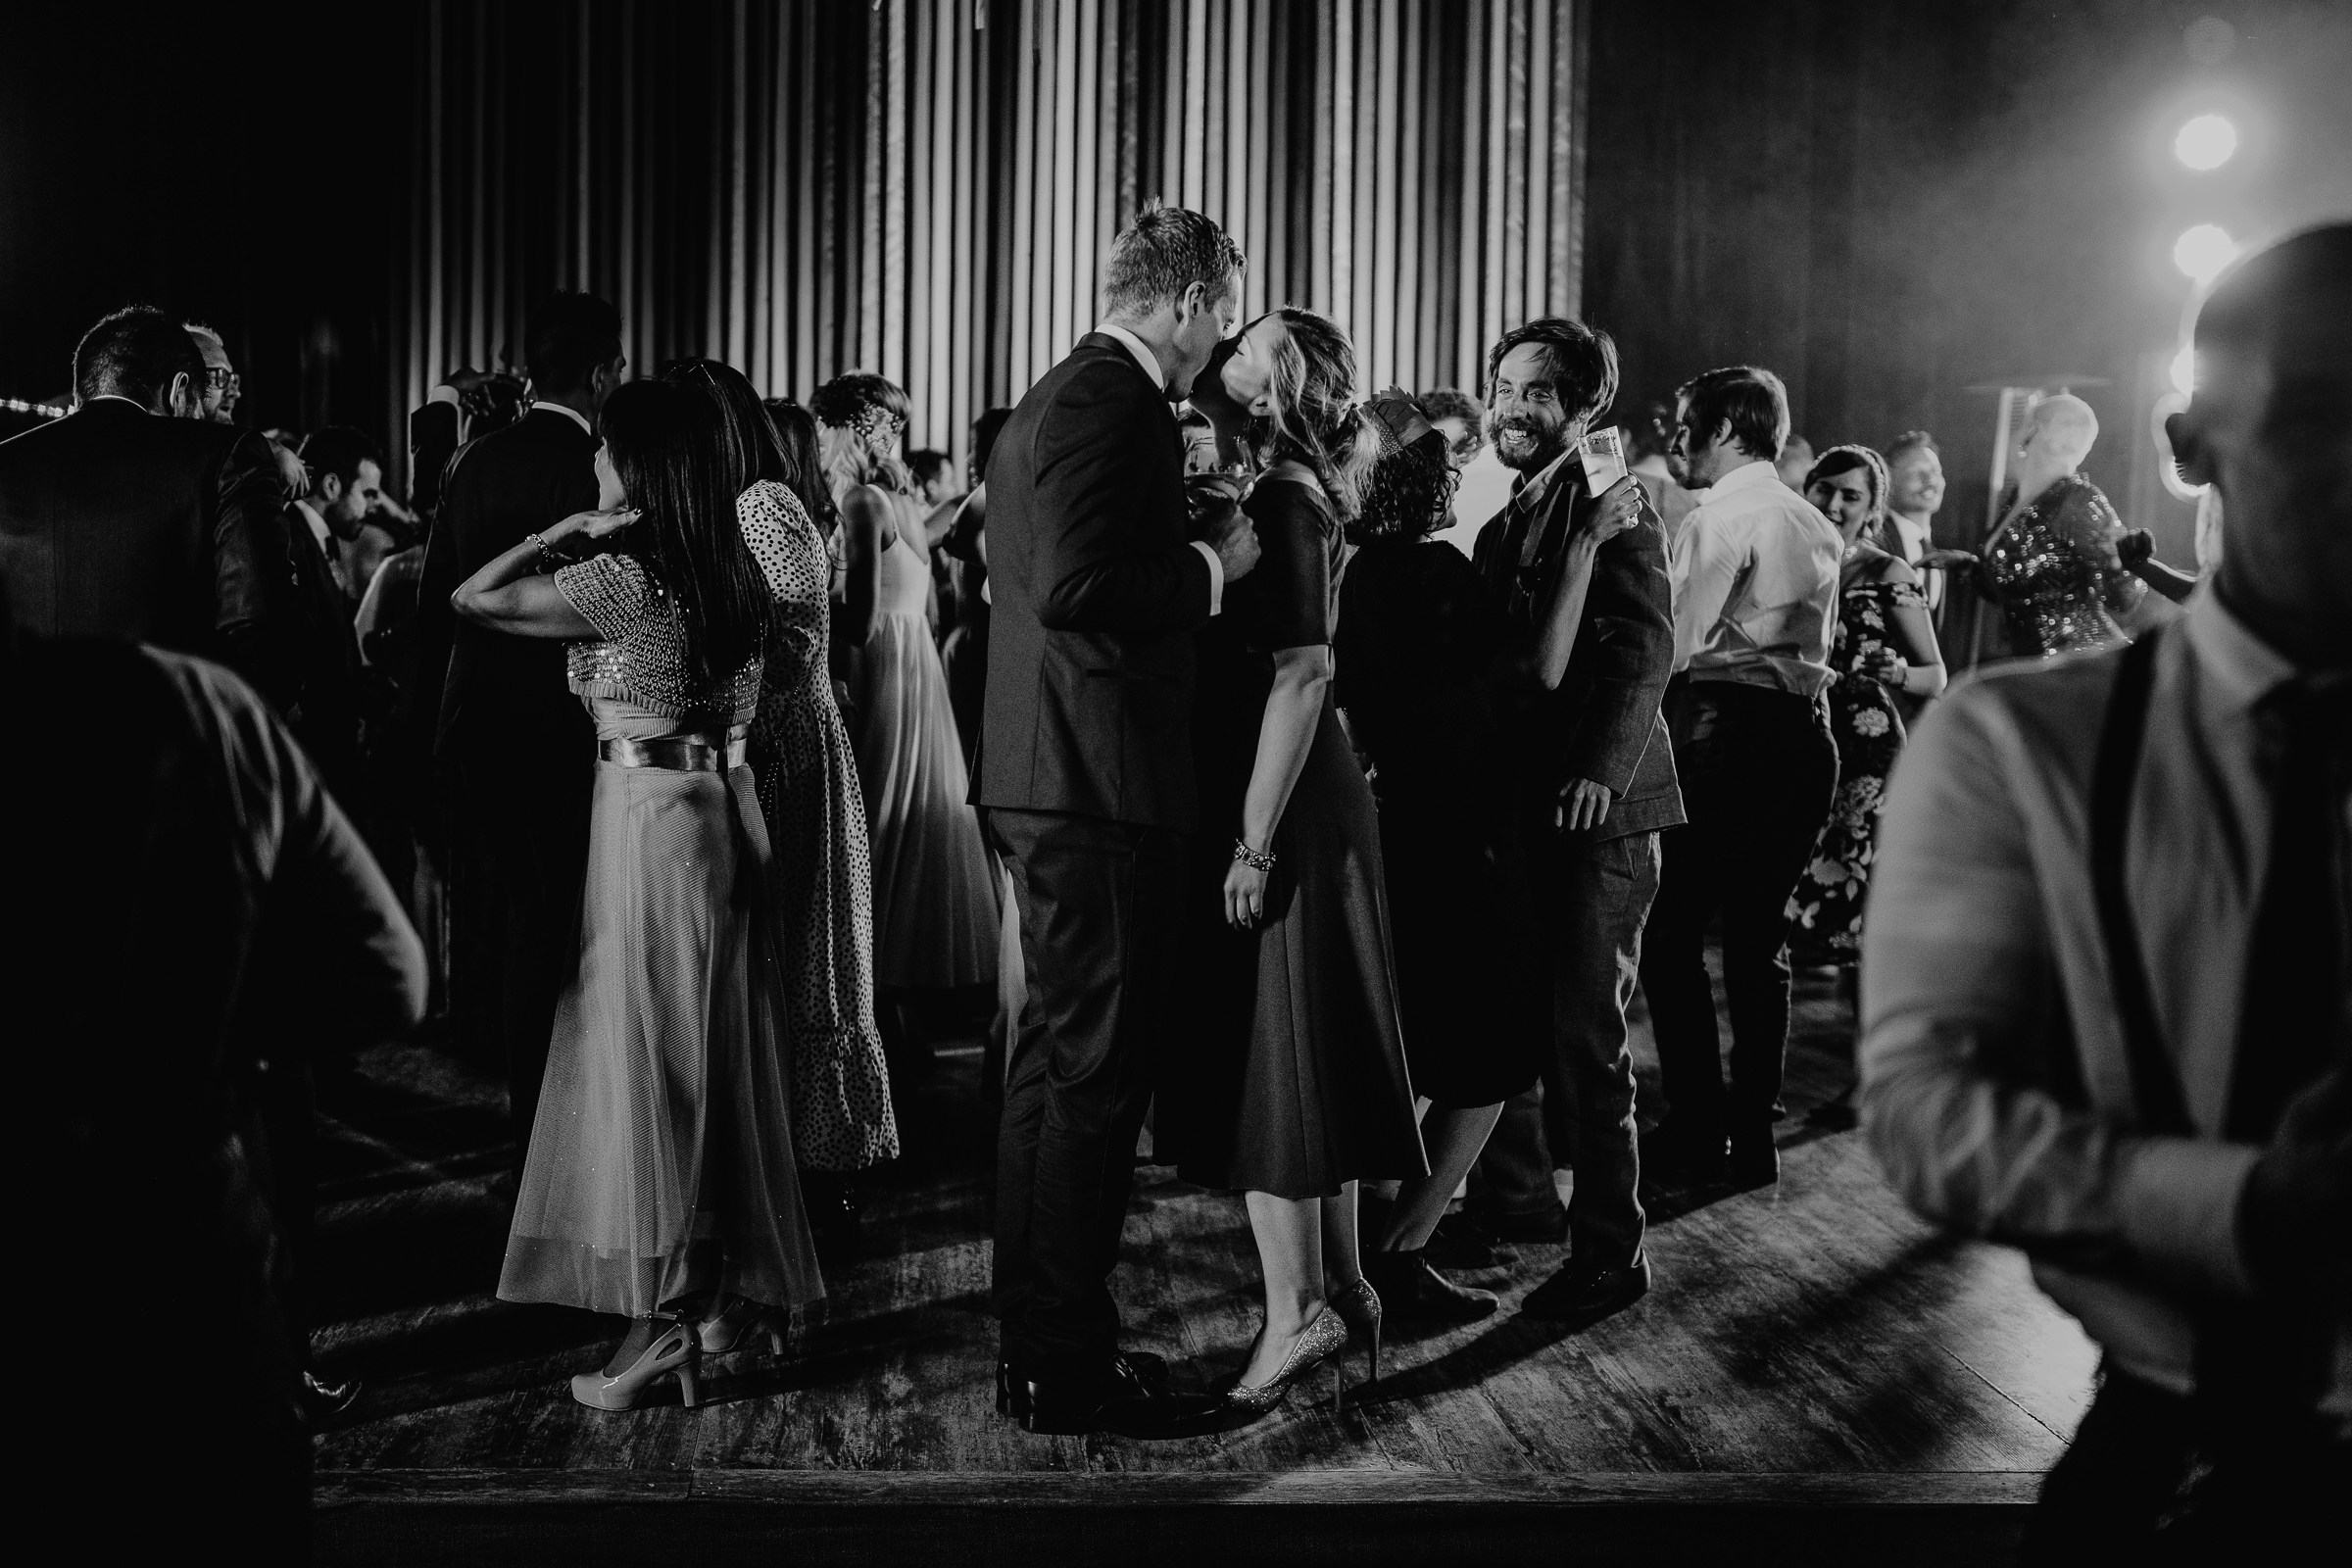 black and white photo of a wedding party